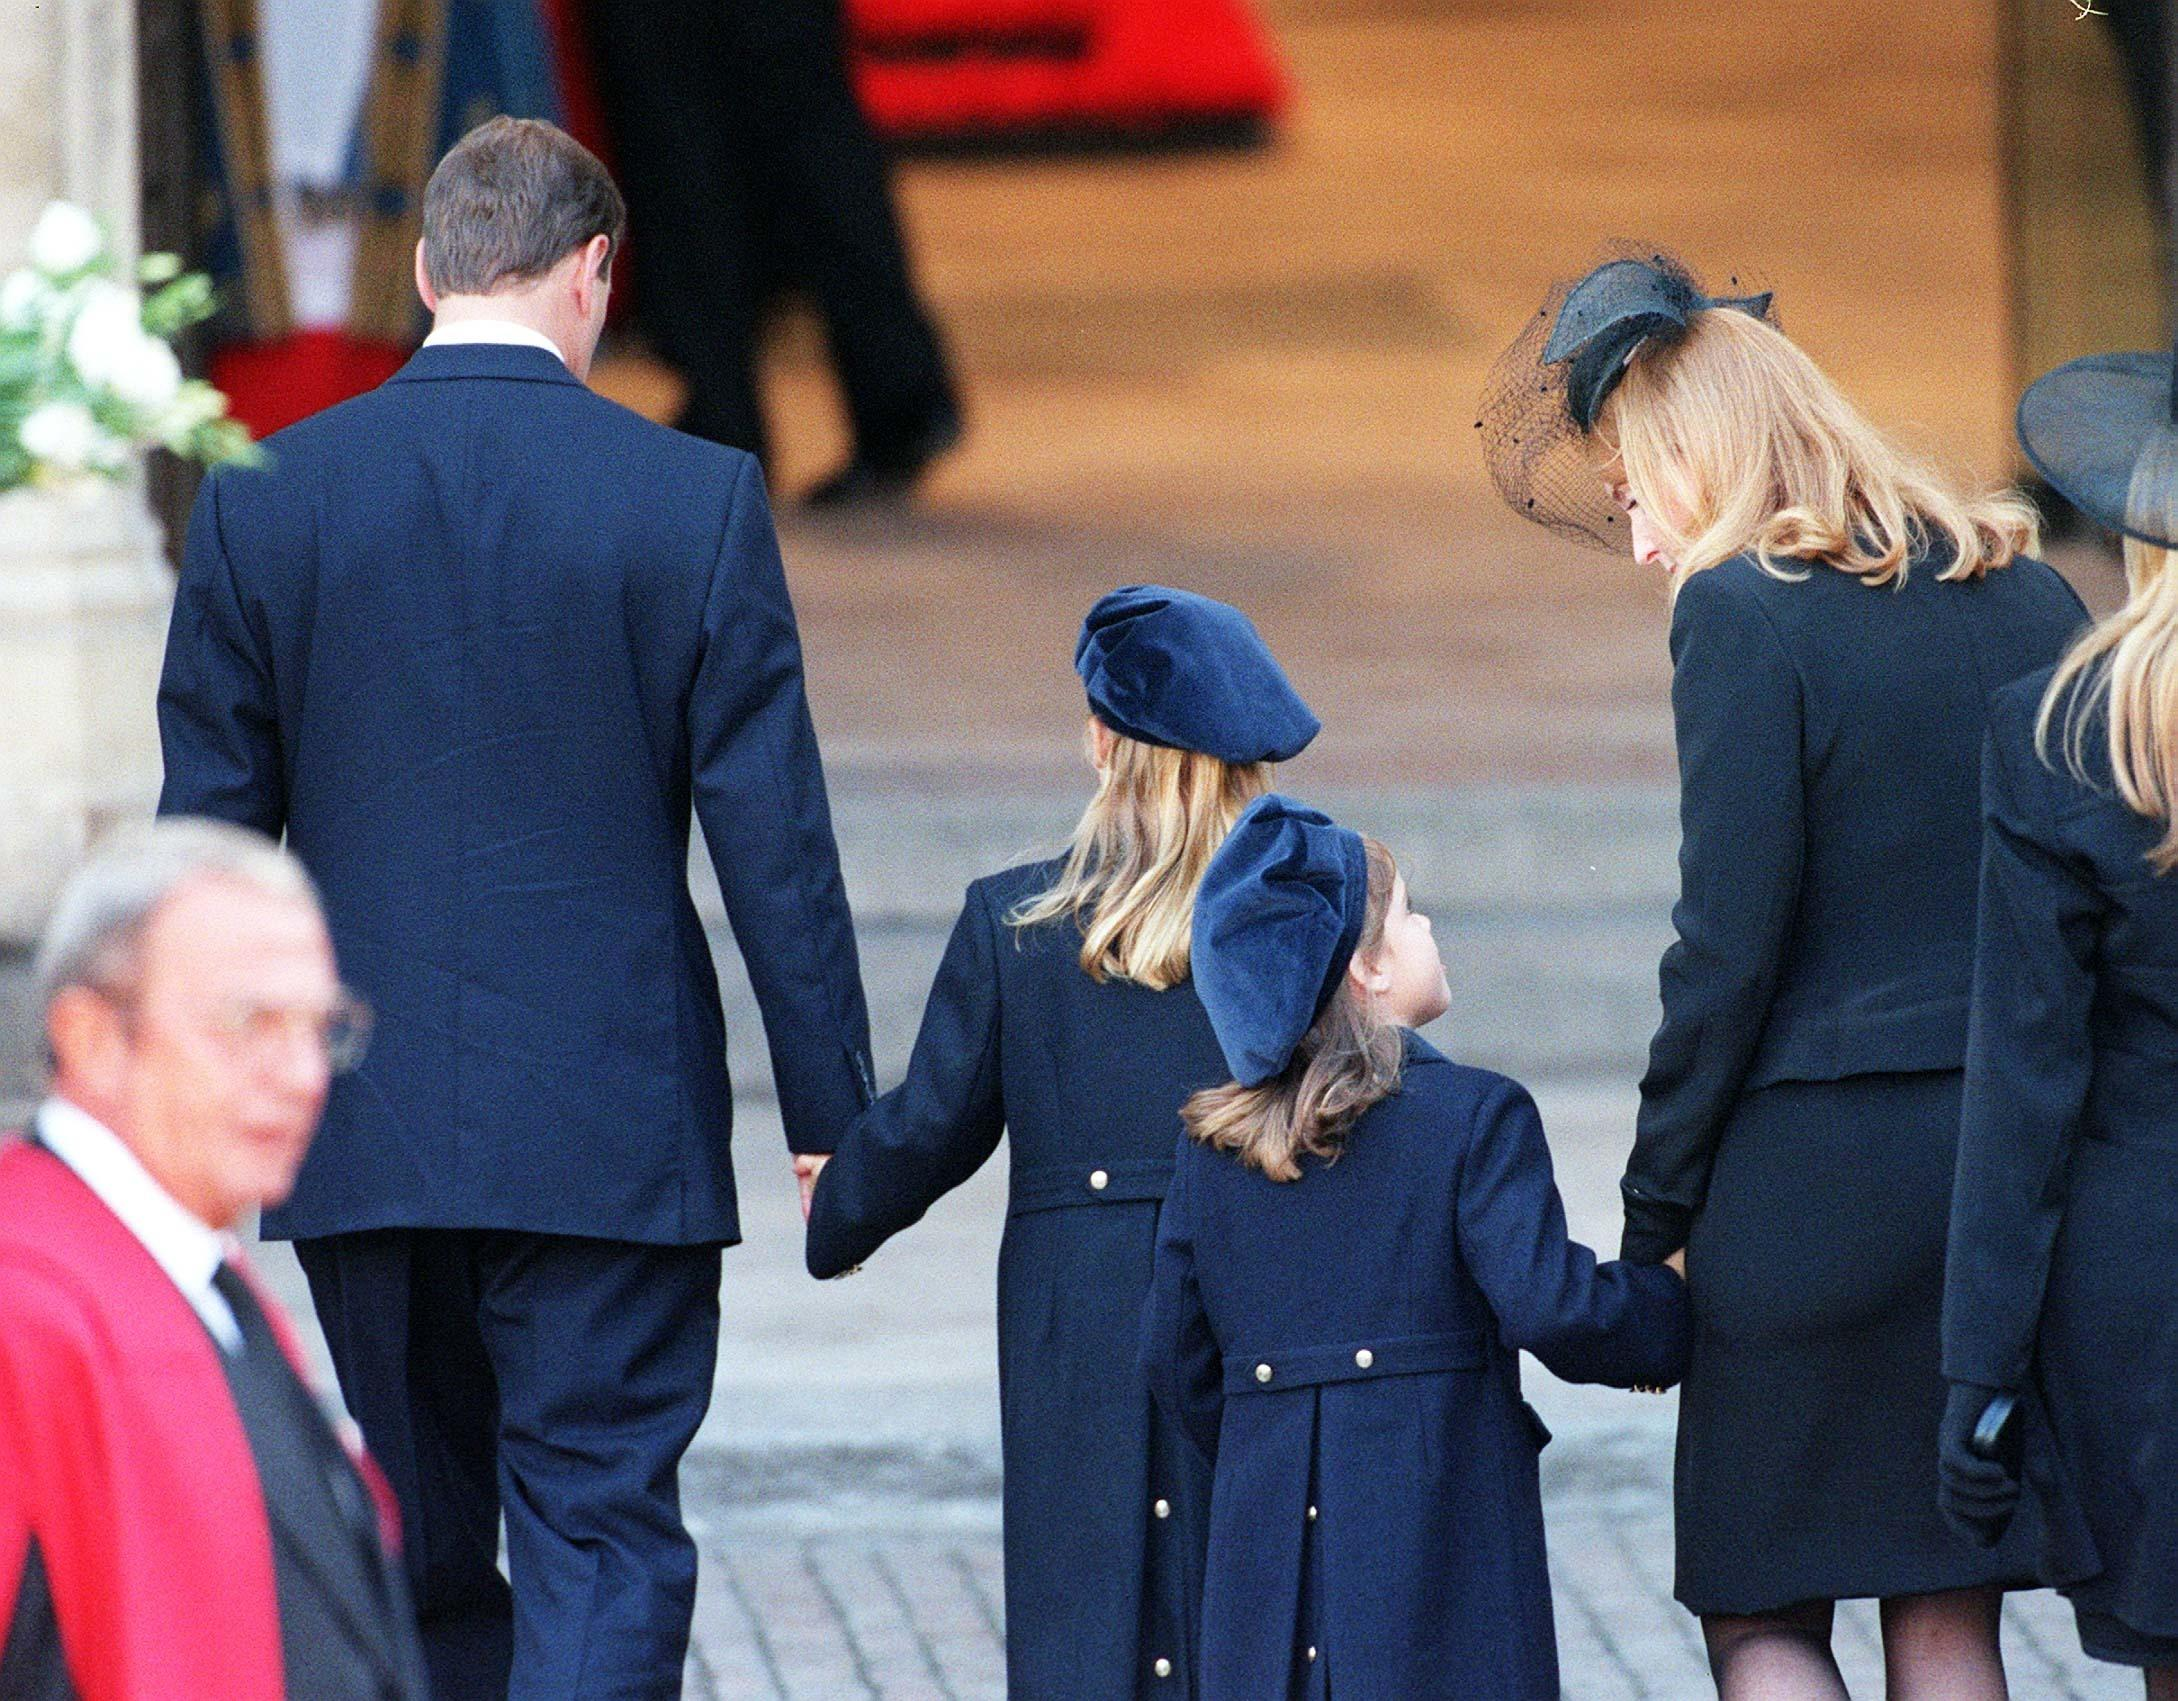 The Duke and Duchess of York and their daughters Princess Beatrice (2nd left) and Eugene arrive at Westminster Abbey for the funeral of Diana,  Princess of Wales today (Sat).